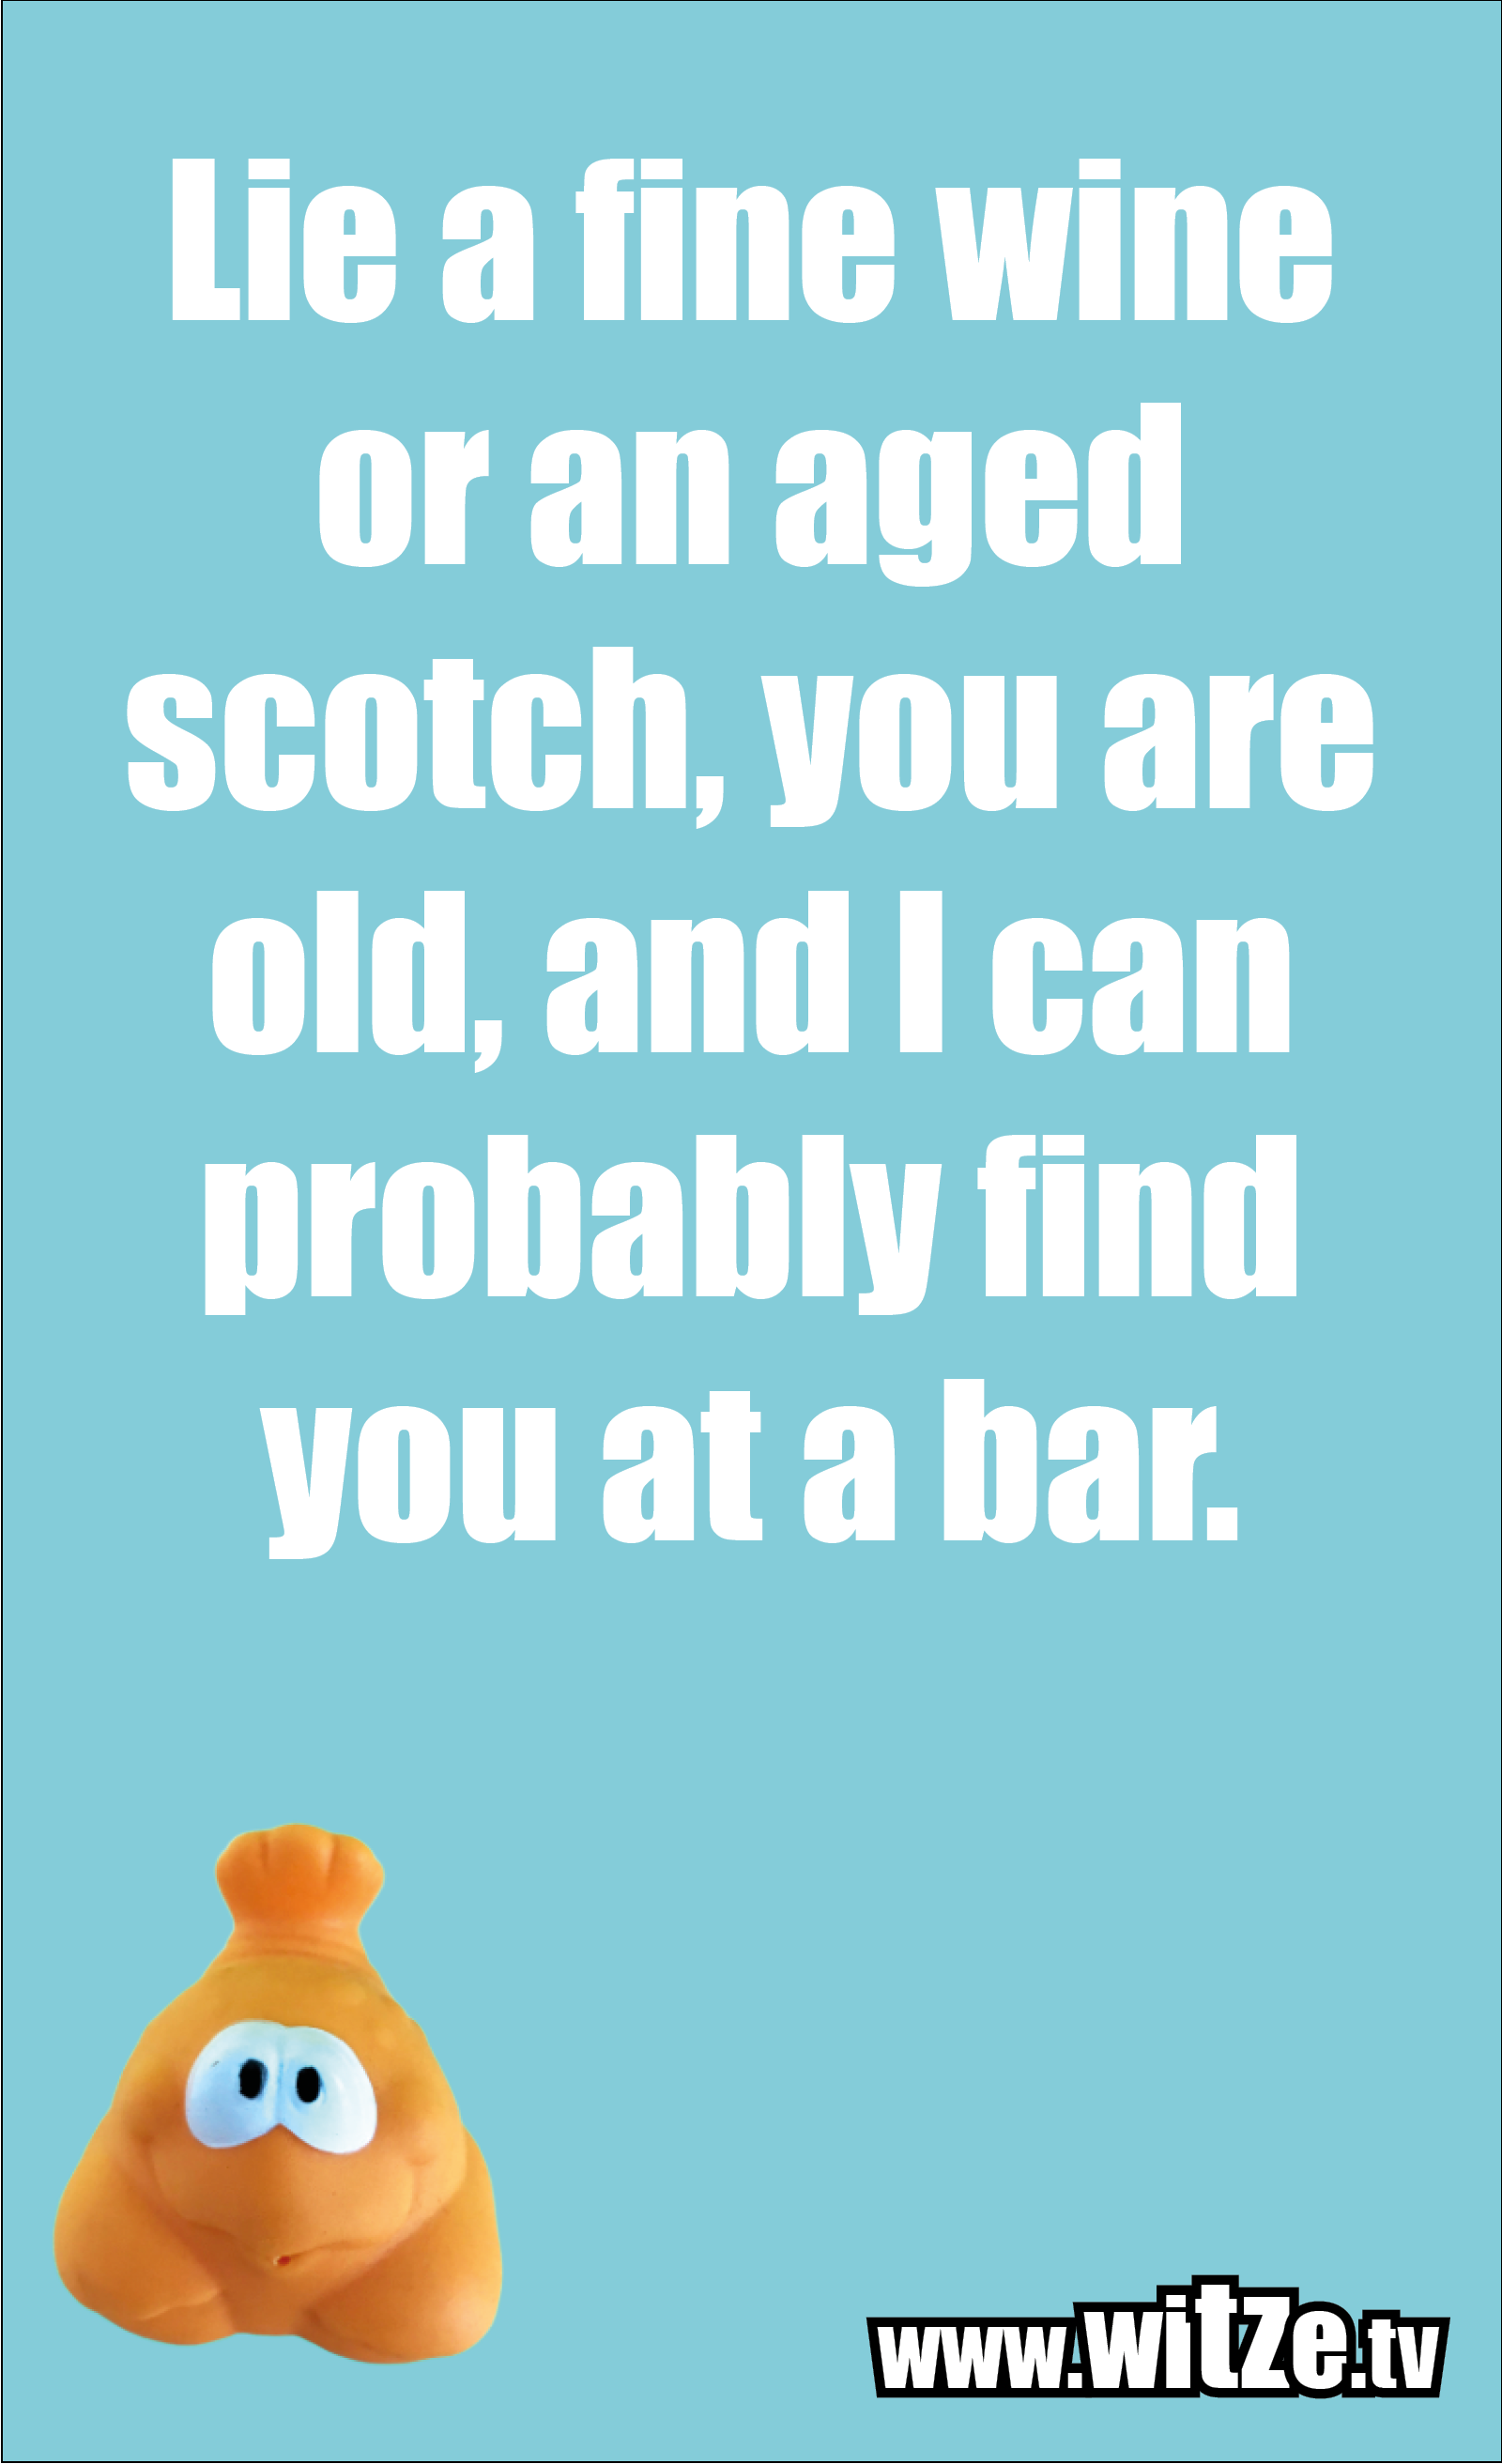 Lustige Geburtstagswünsche: Lie a fine wine or an aged scotch, you are old, and I can probably find you at a bar.